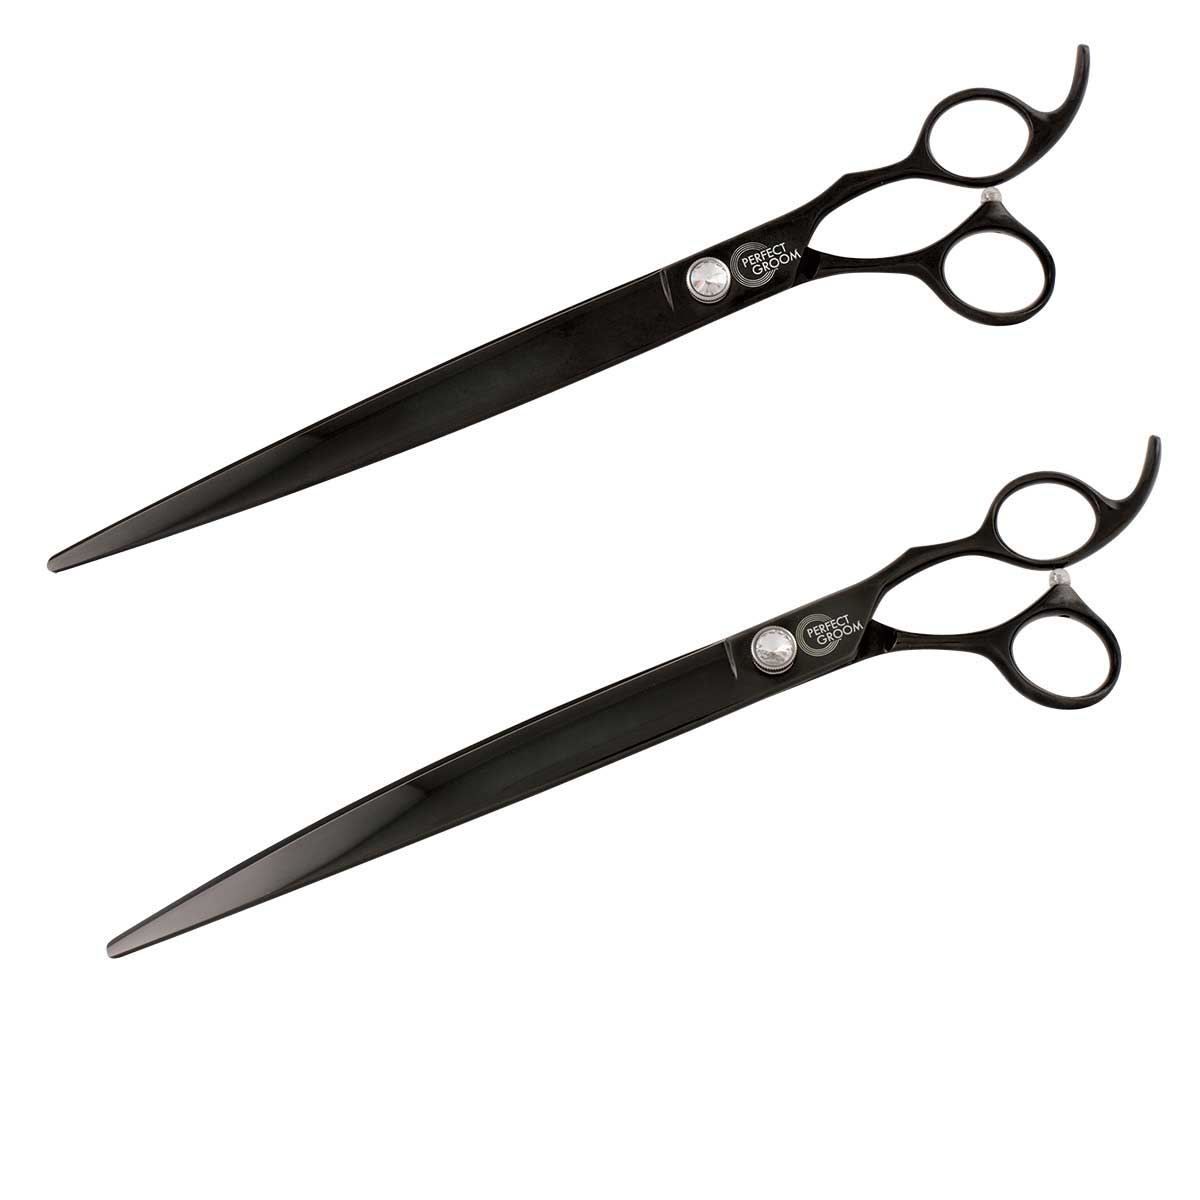 "Perfect Groom Shear Combo includes 10"" Curved Shear and 10 inch Straight Shear"